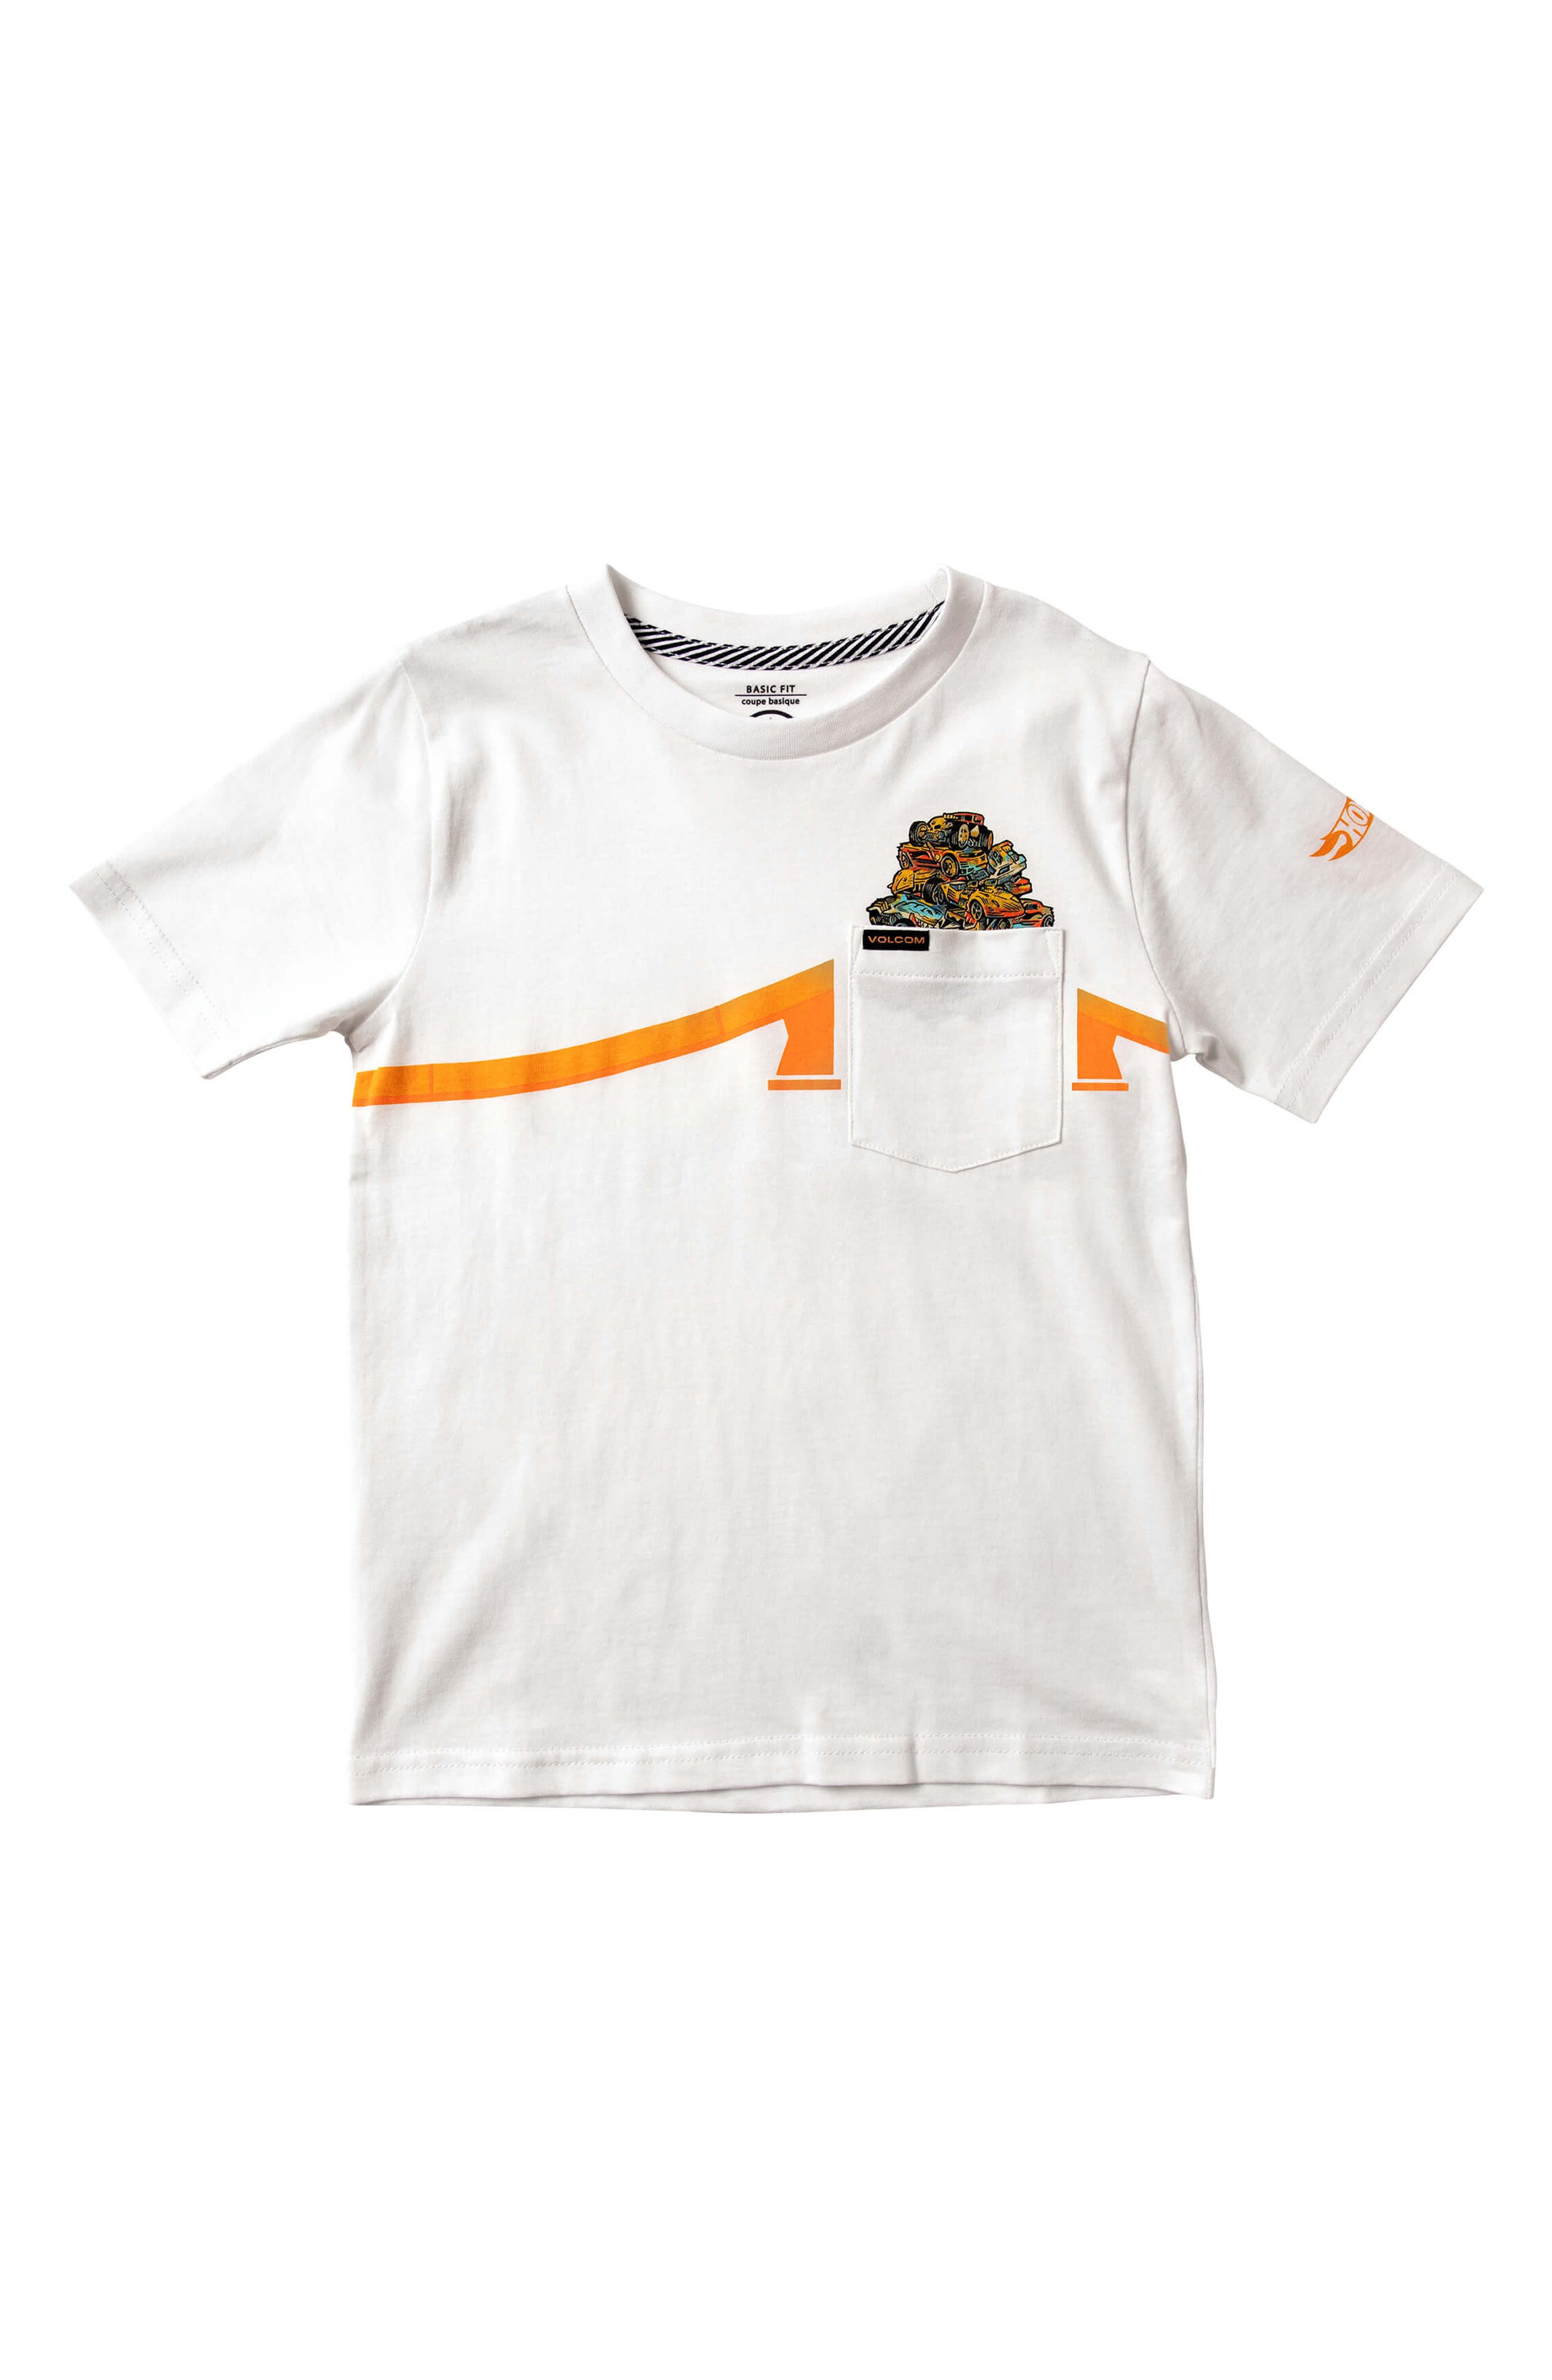 x Hot Wheels<sup>®</sup> Pile Up Pocket T-Shirt,                             Main thumbnail 1, color,                             100